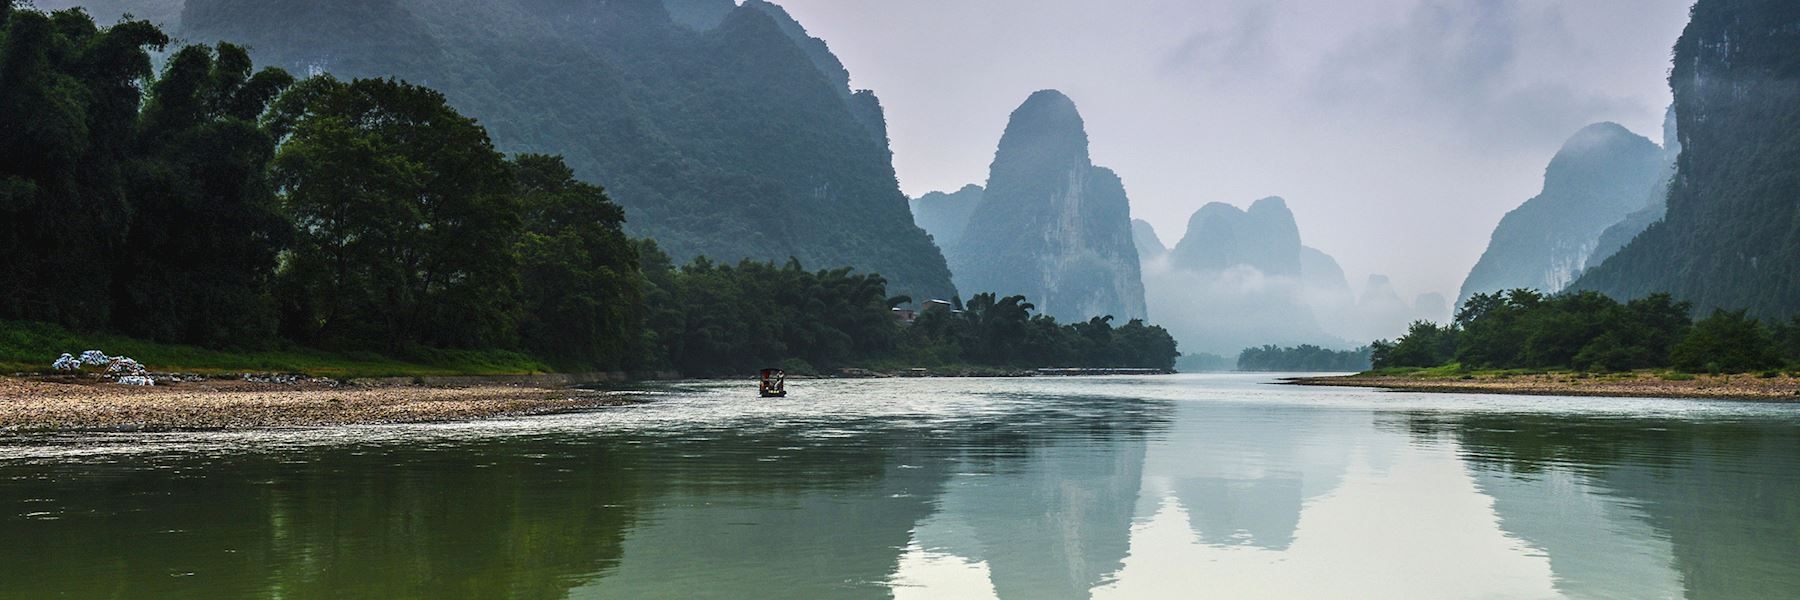 Visit The Yangtze River on a trip to China | Audley Travel